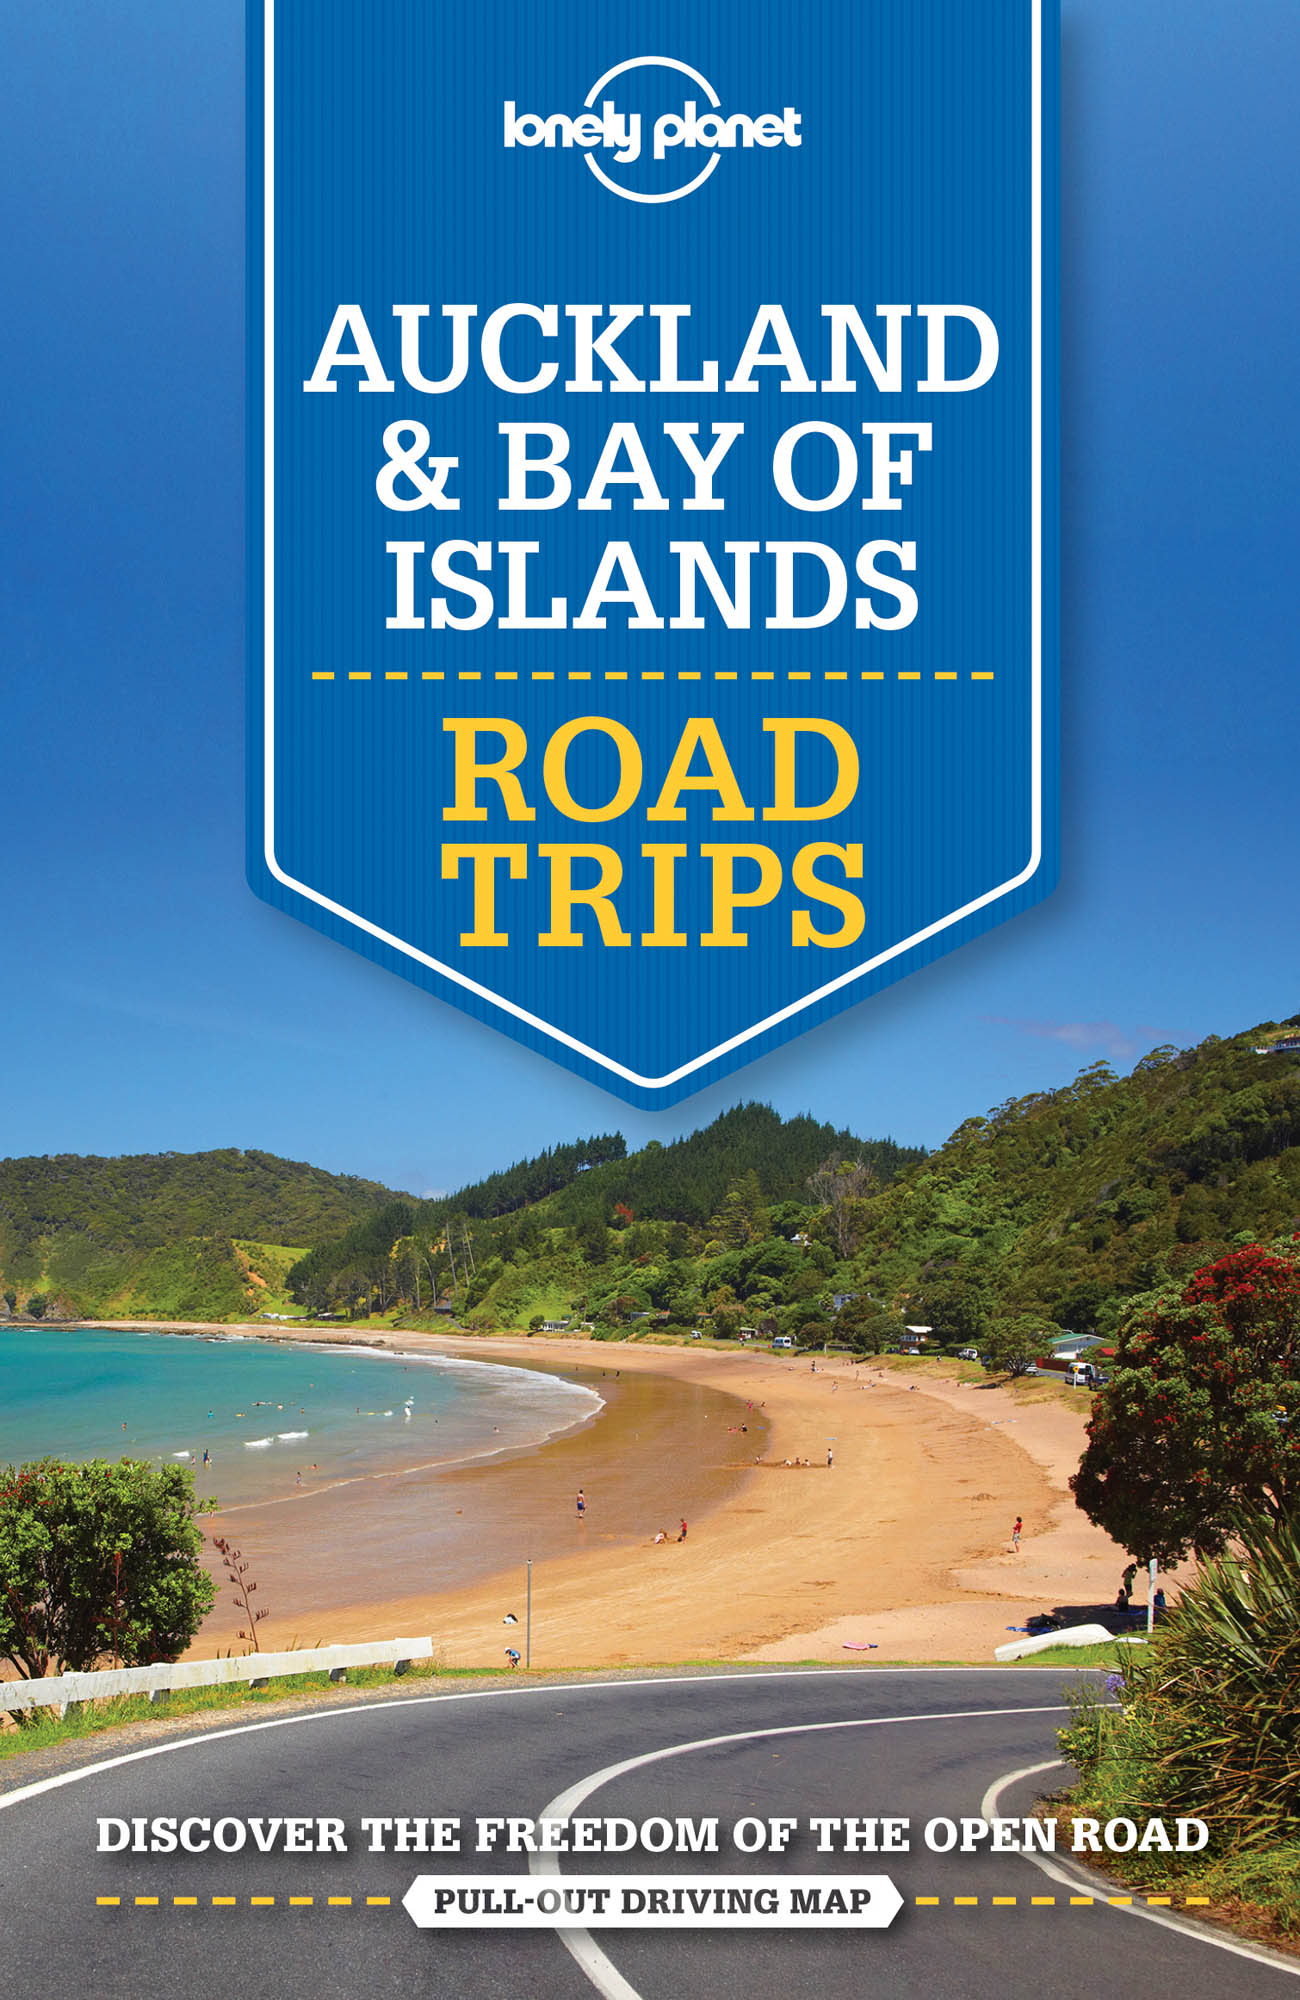 Auckland & Bay Best Trips průvodce 1st 2016 Lonely Planet